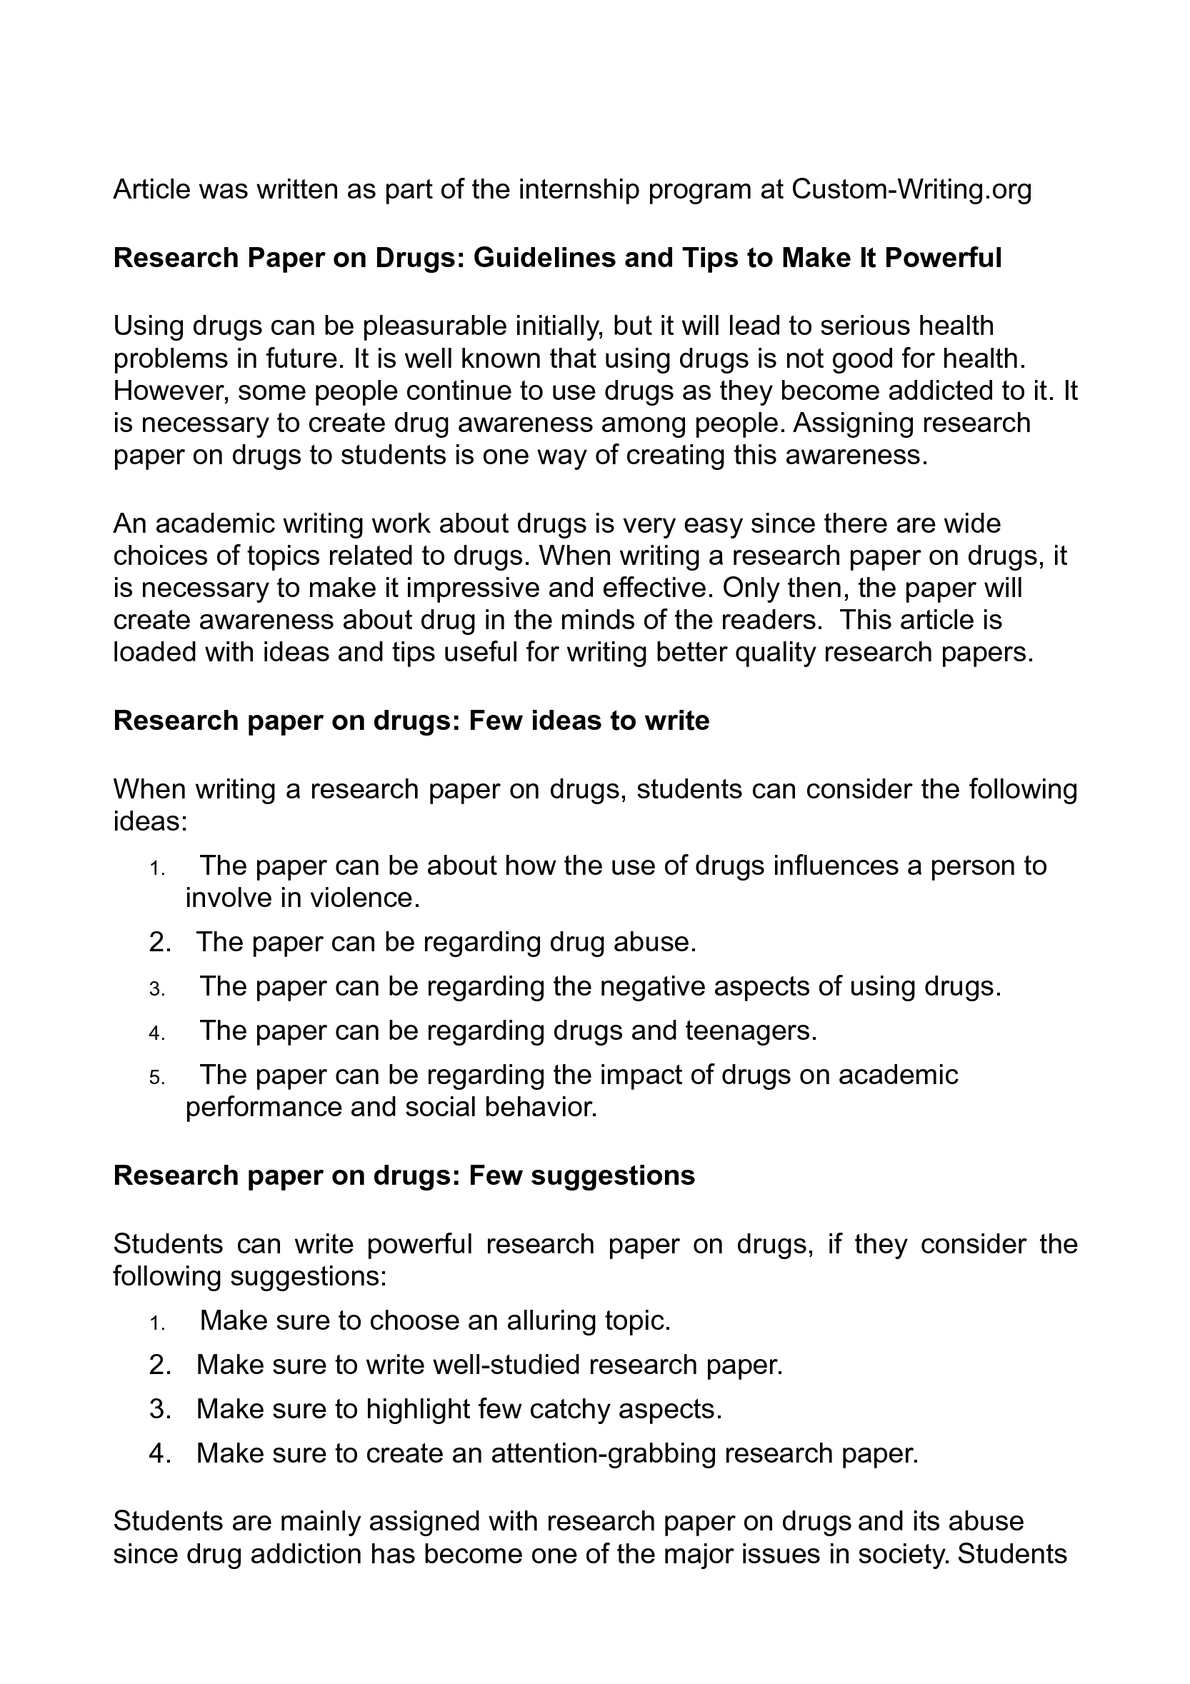 Research paper on drugs